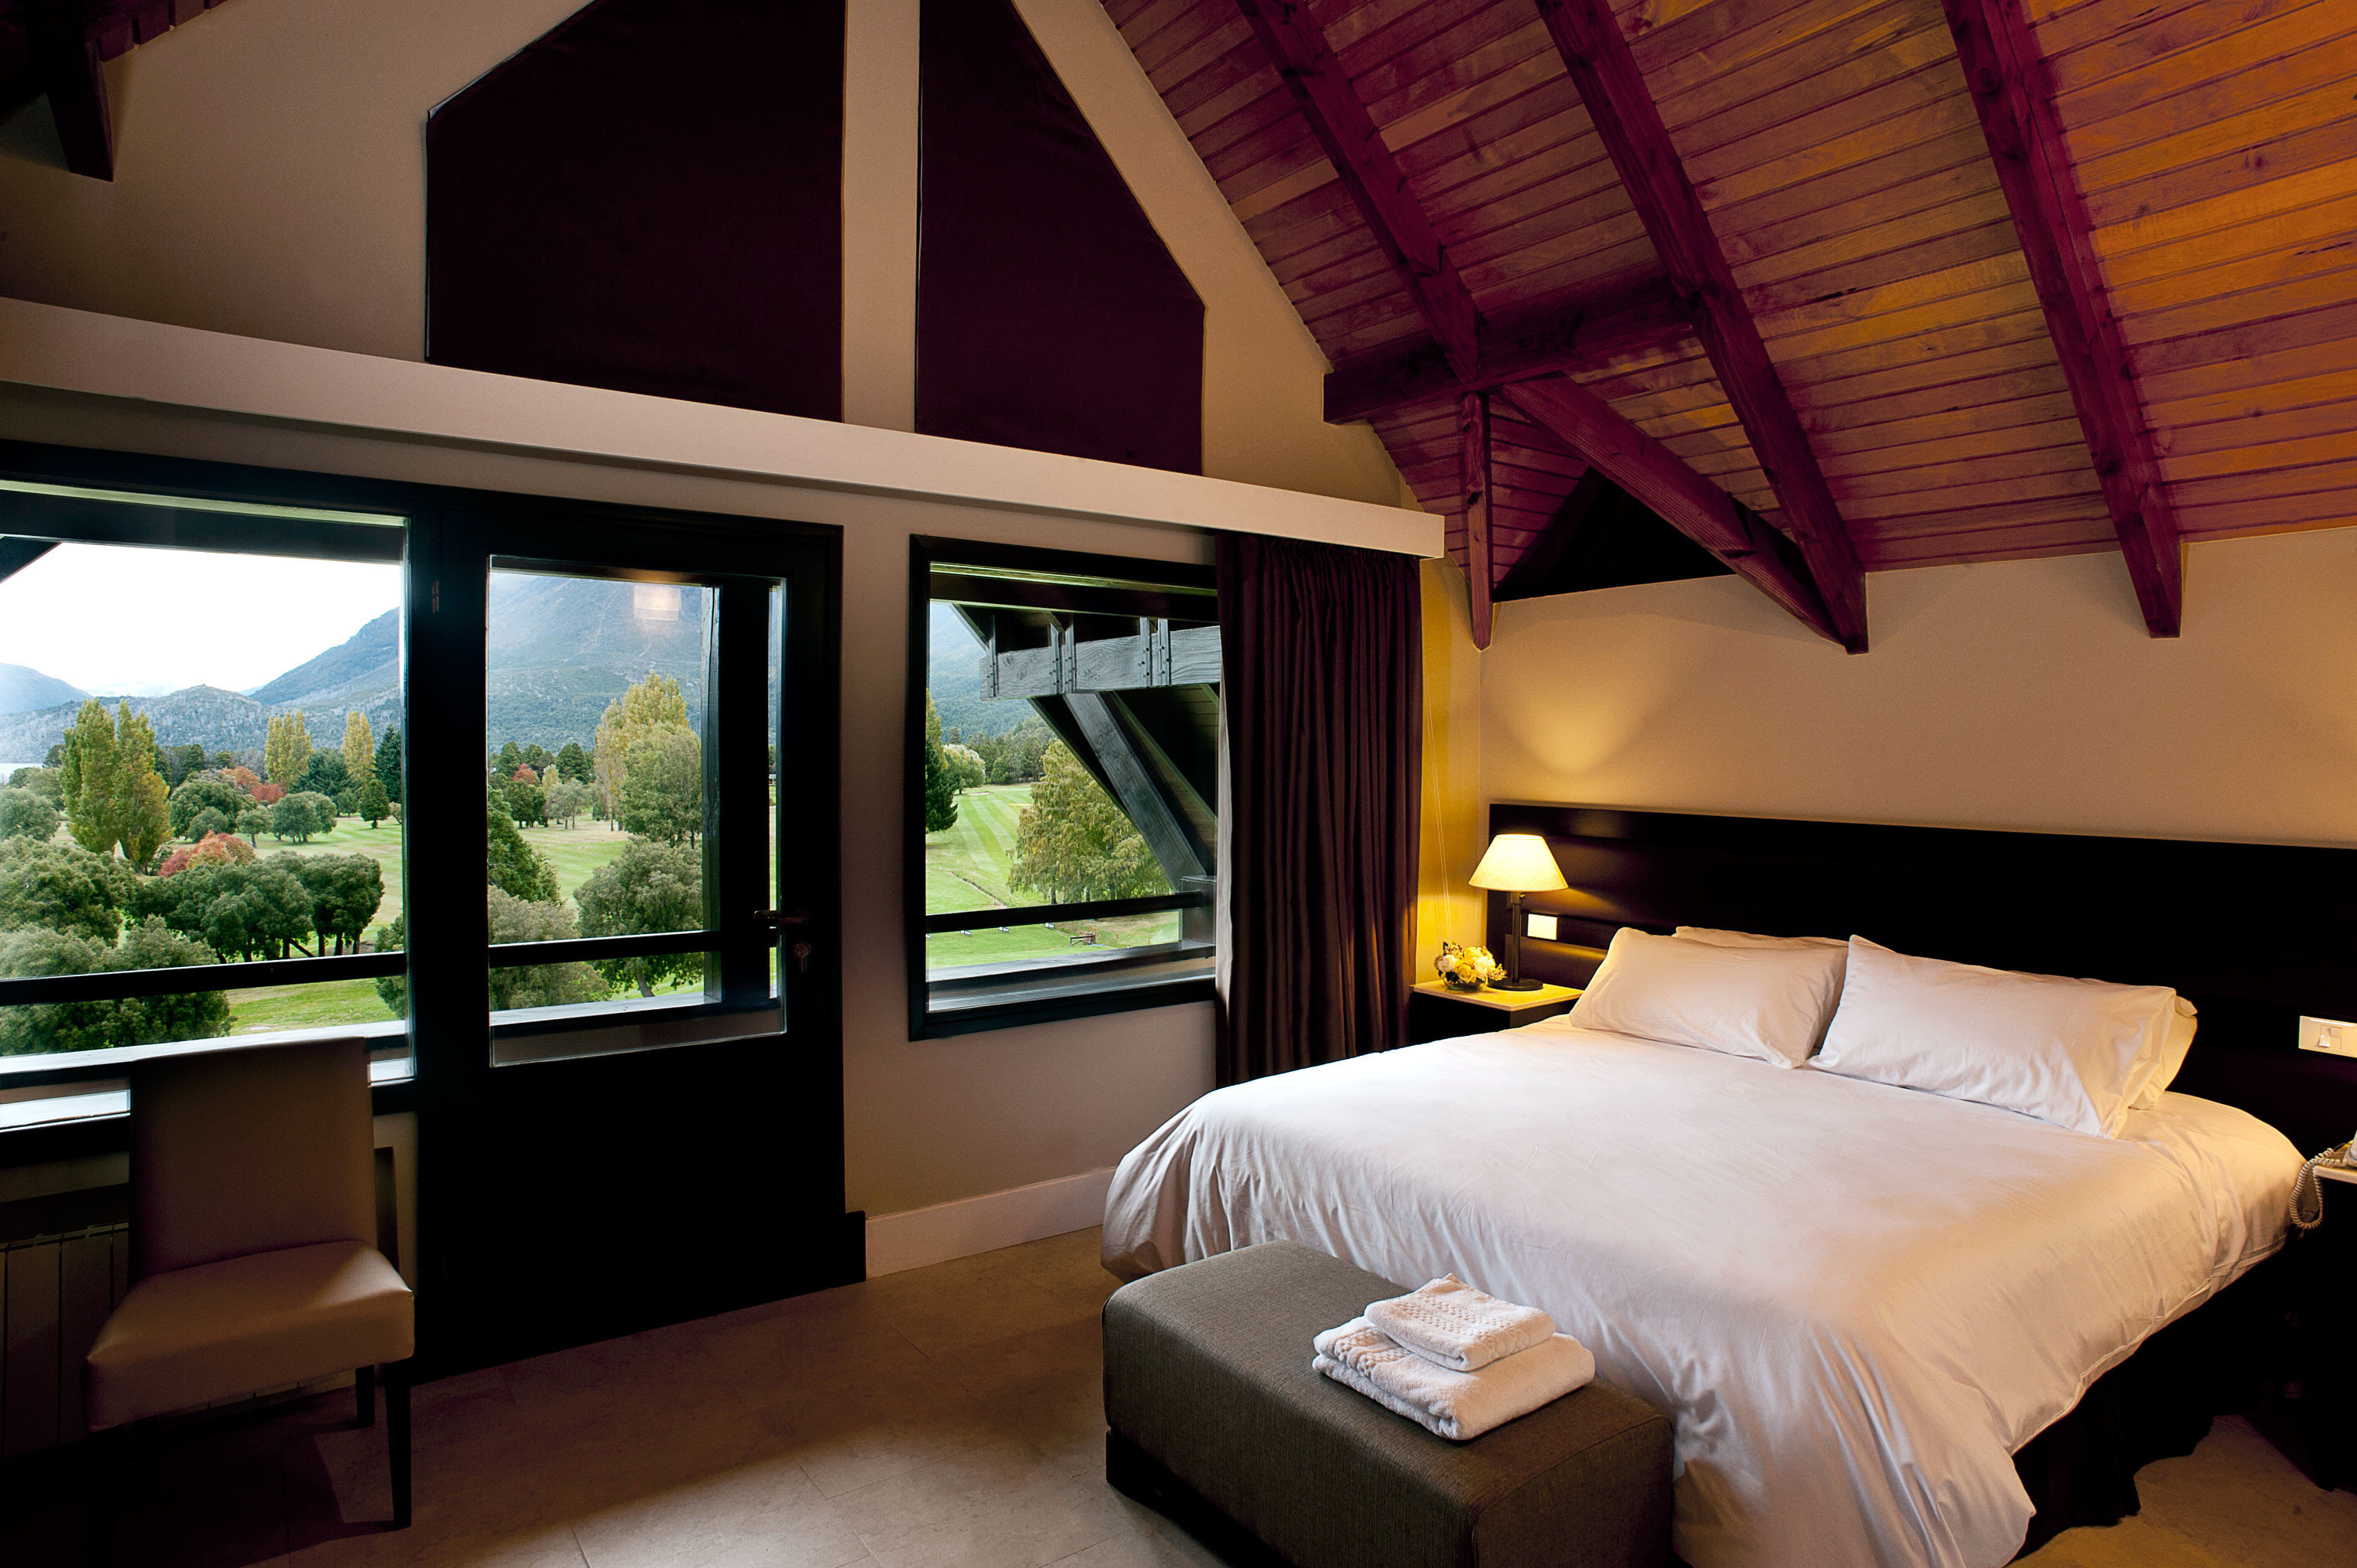 Bedroom Country Lodge Rustic property house Resort home cottage Villa Suite